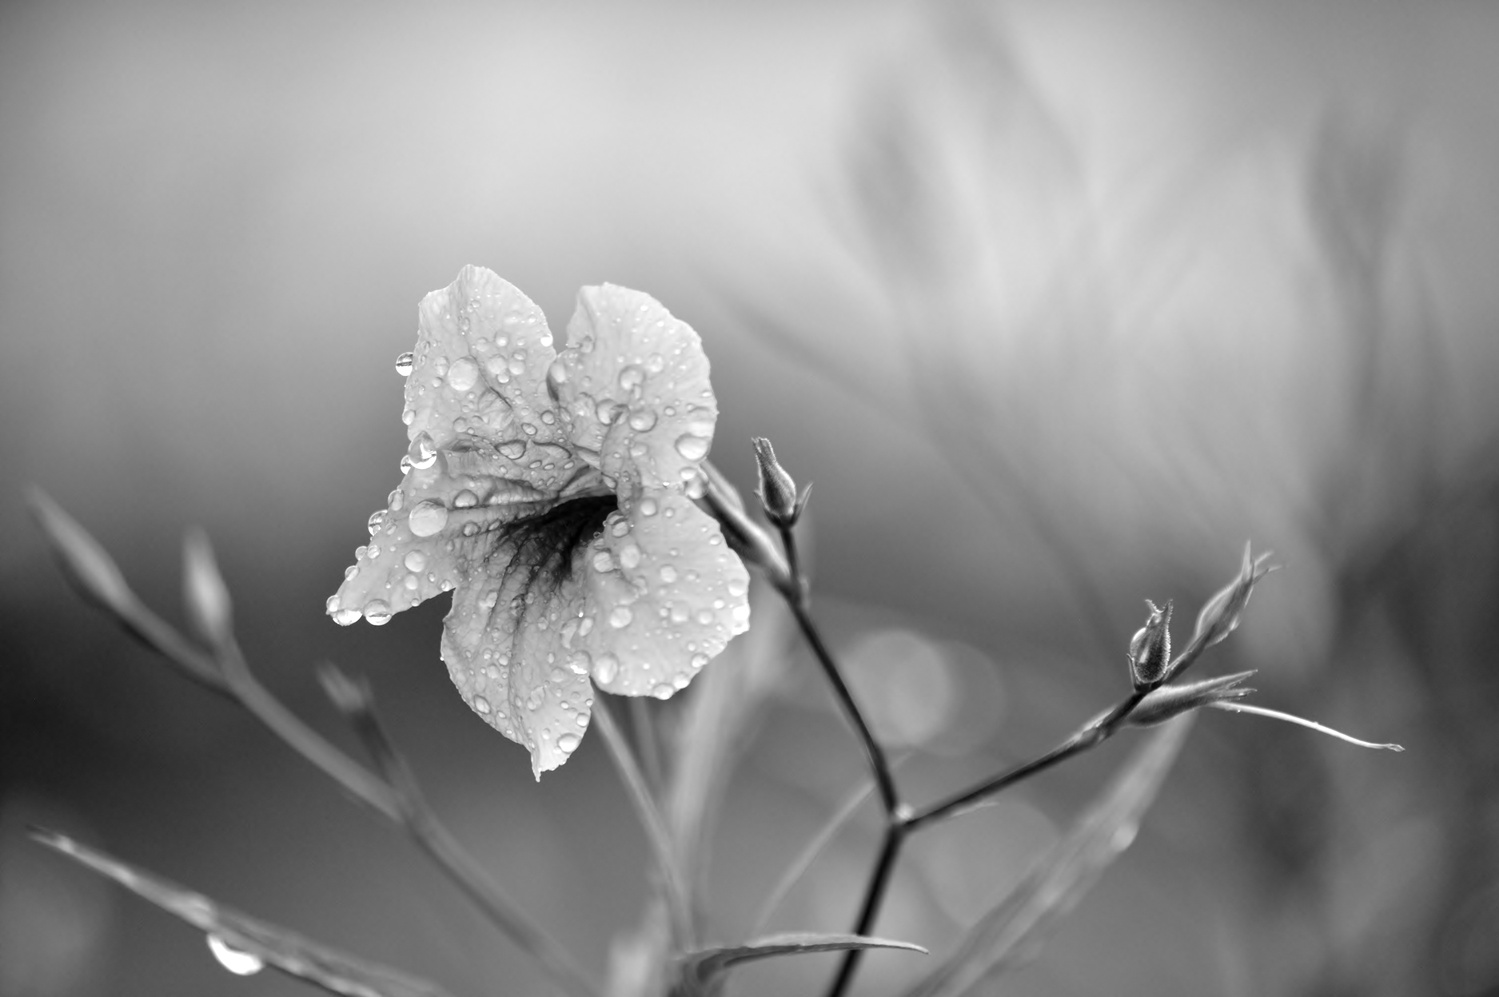 Flower Droplets in Cabo by Thomas Herbst